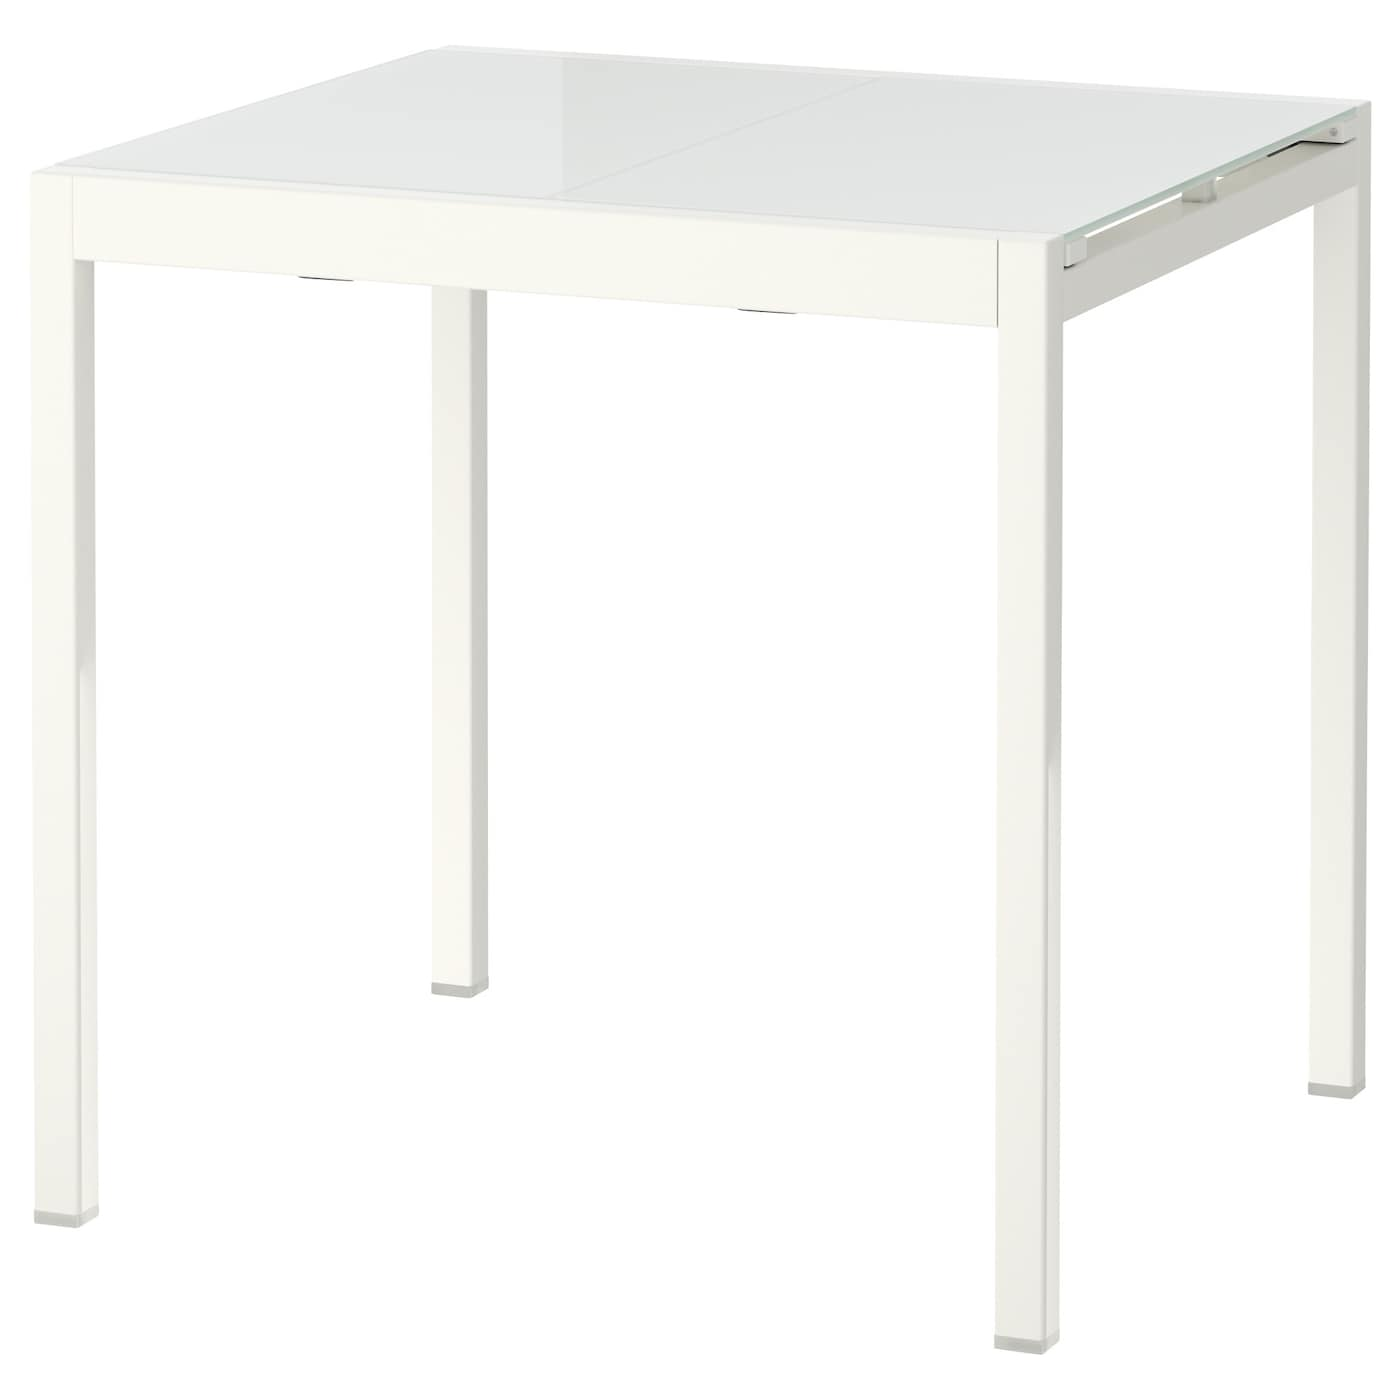 Glivarp extendable table white 75 115x70 cm ikea for Table extensible 80